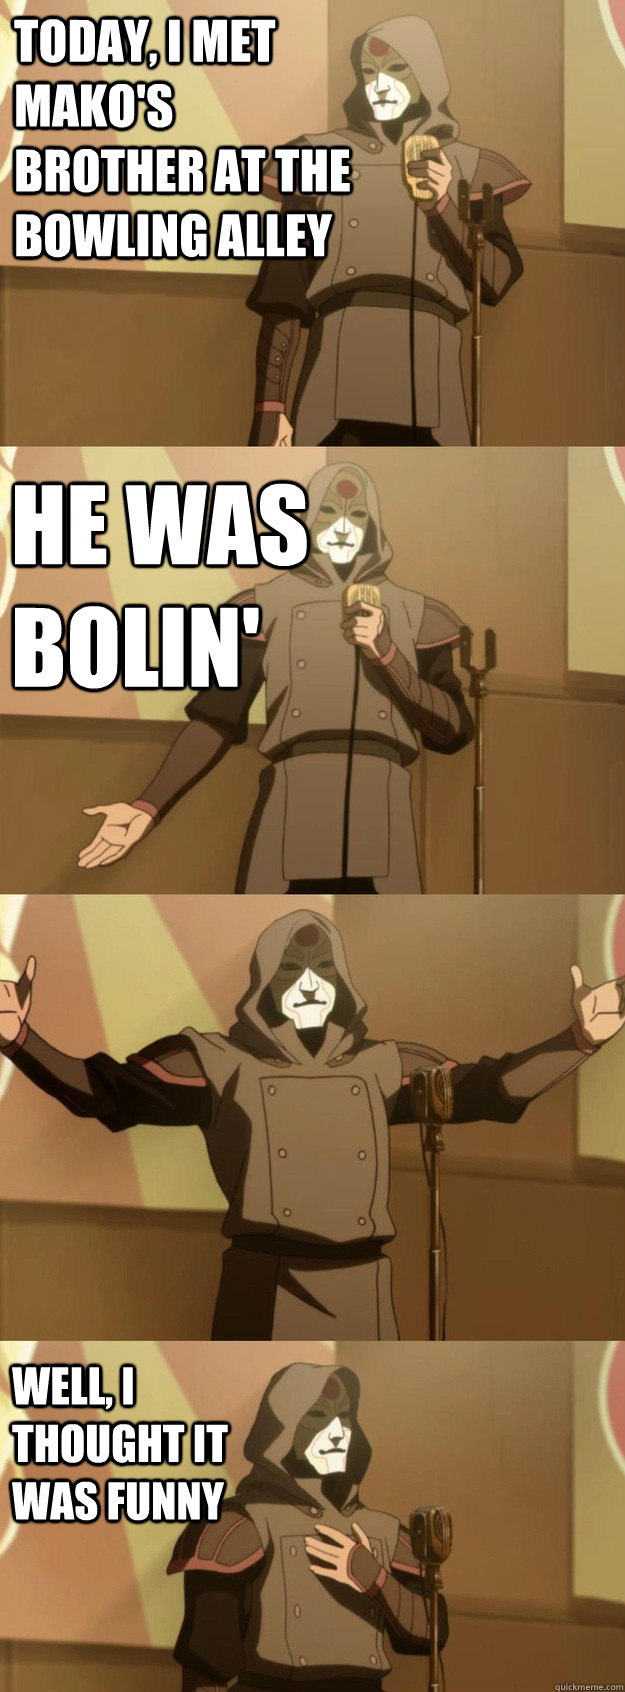 Today, i met mako's brother at the bowling alley he was bolin' Well, I thought it was funny - Today, i met mako's brother at the bowling alley he was bolin' Well, I thought it was funny  Bad Joke Amon